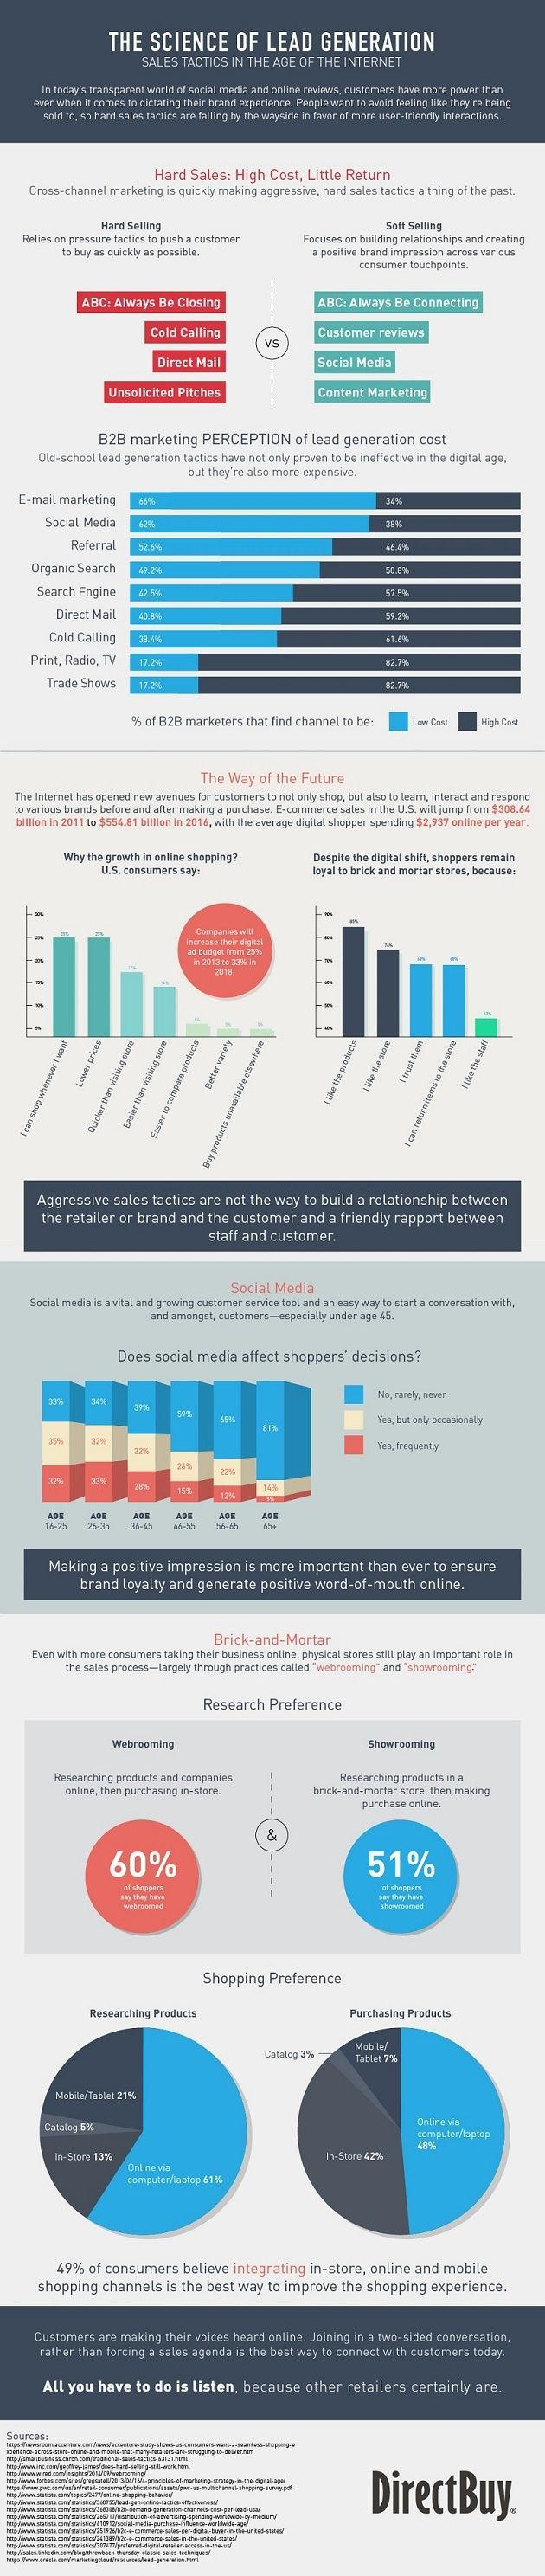 160702-sales-tactics-in-the-digital-age-infographic-preview.jpg 630×2.976 pixels